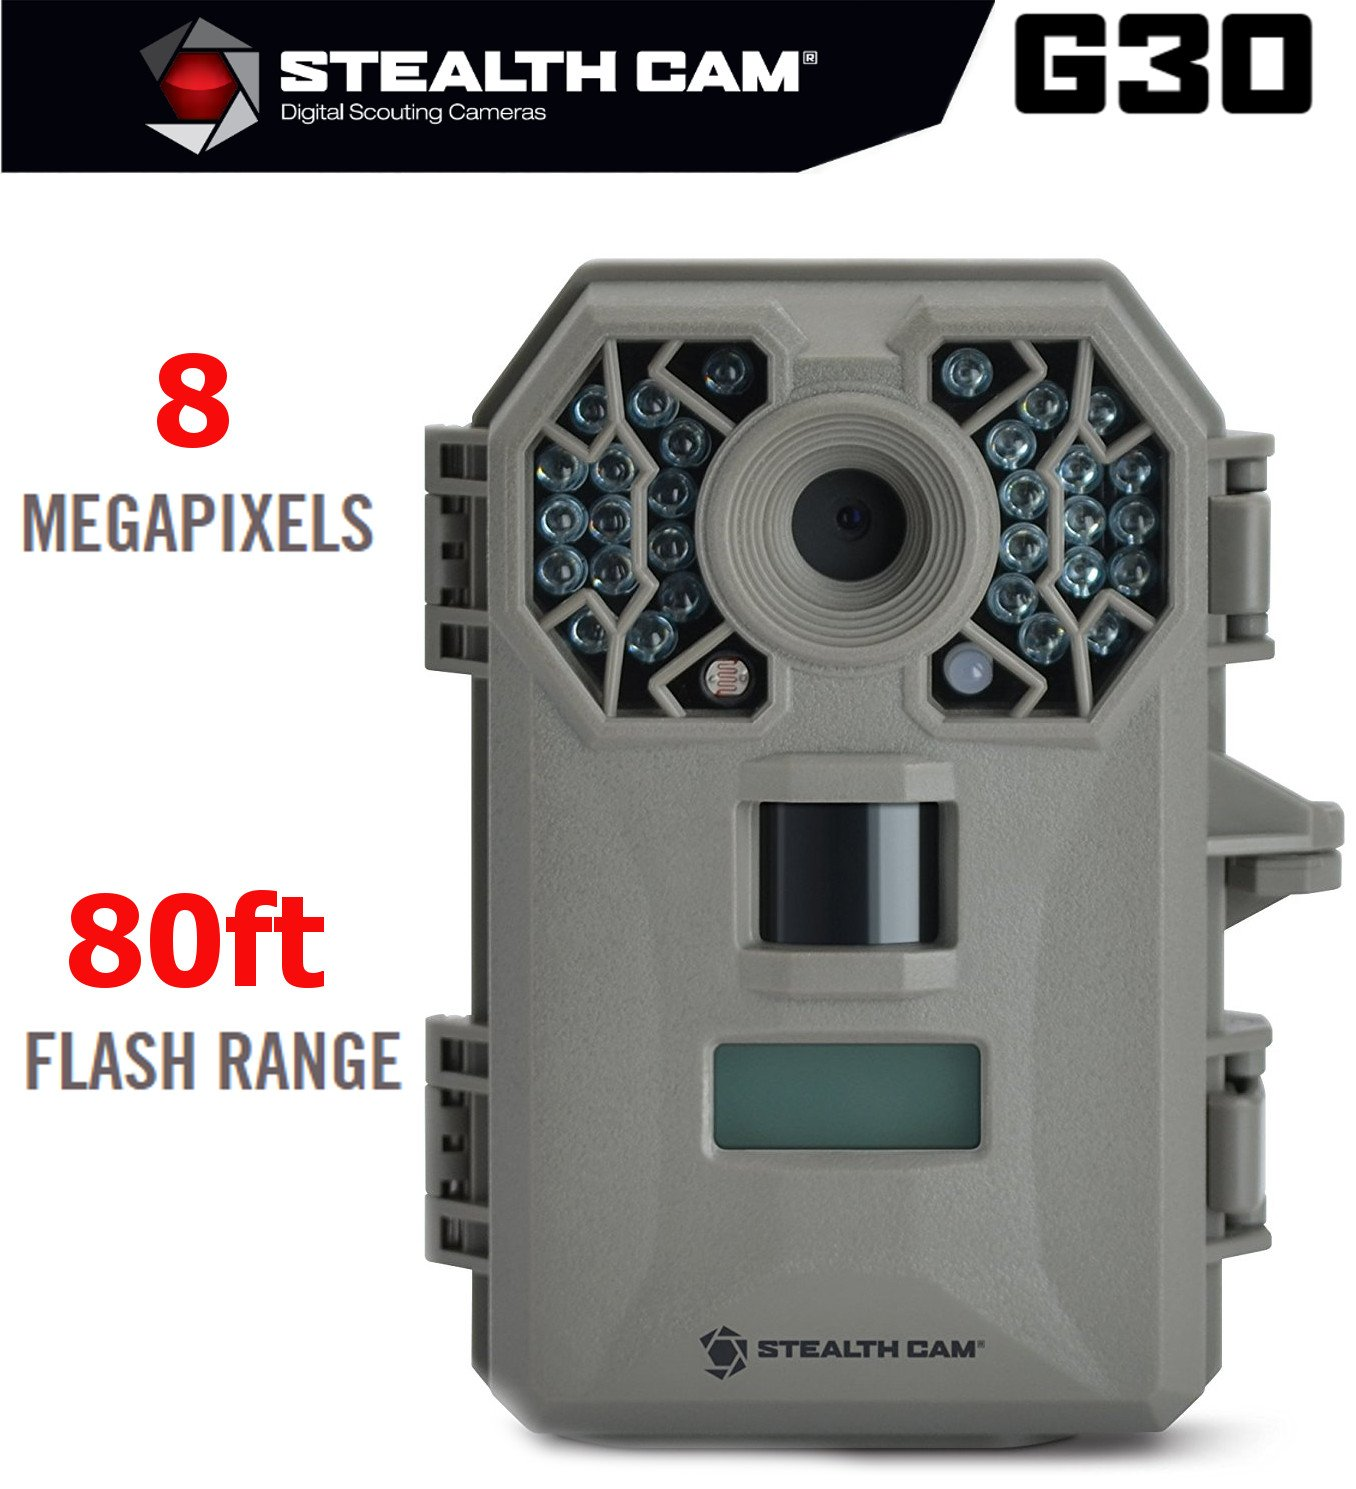 Stealth Cam G30 Trail Camera